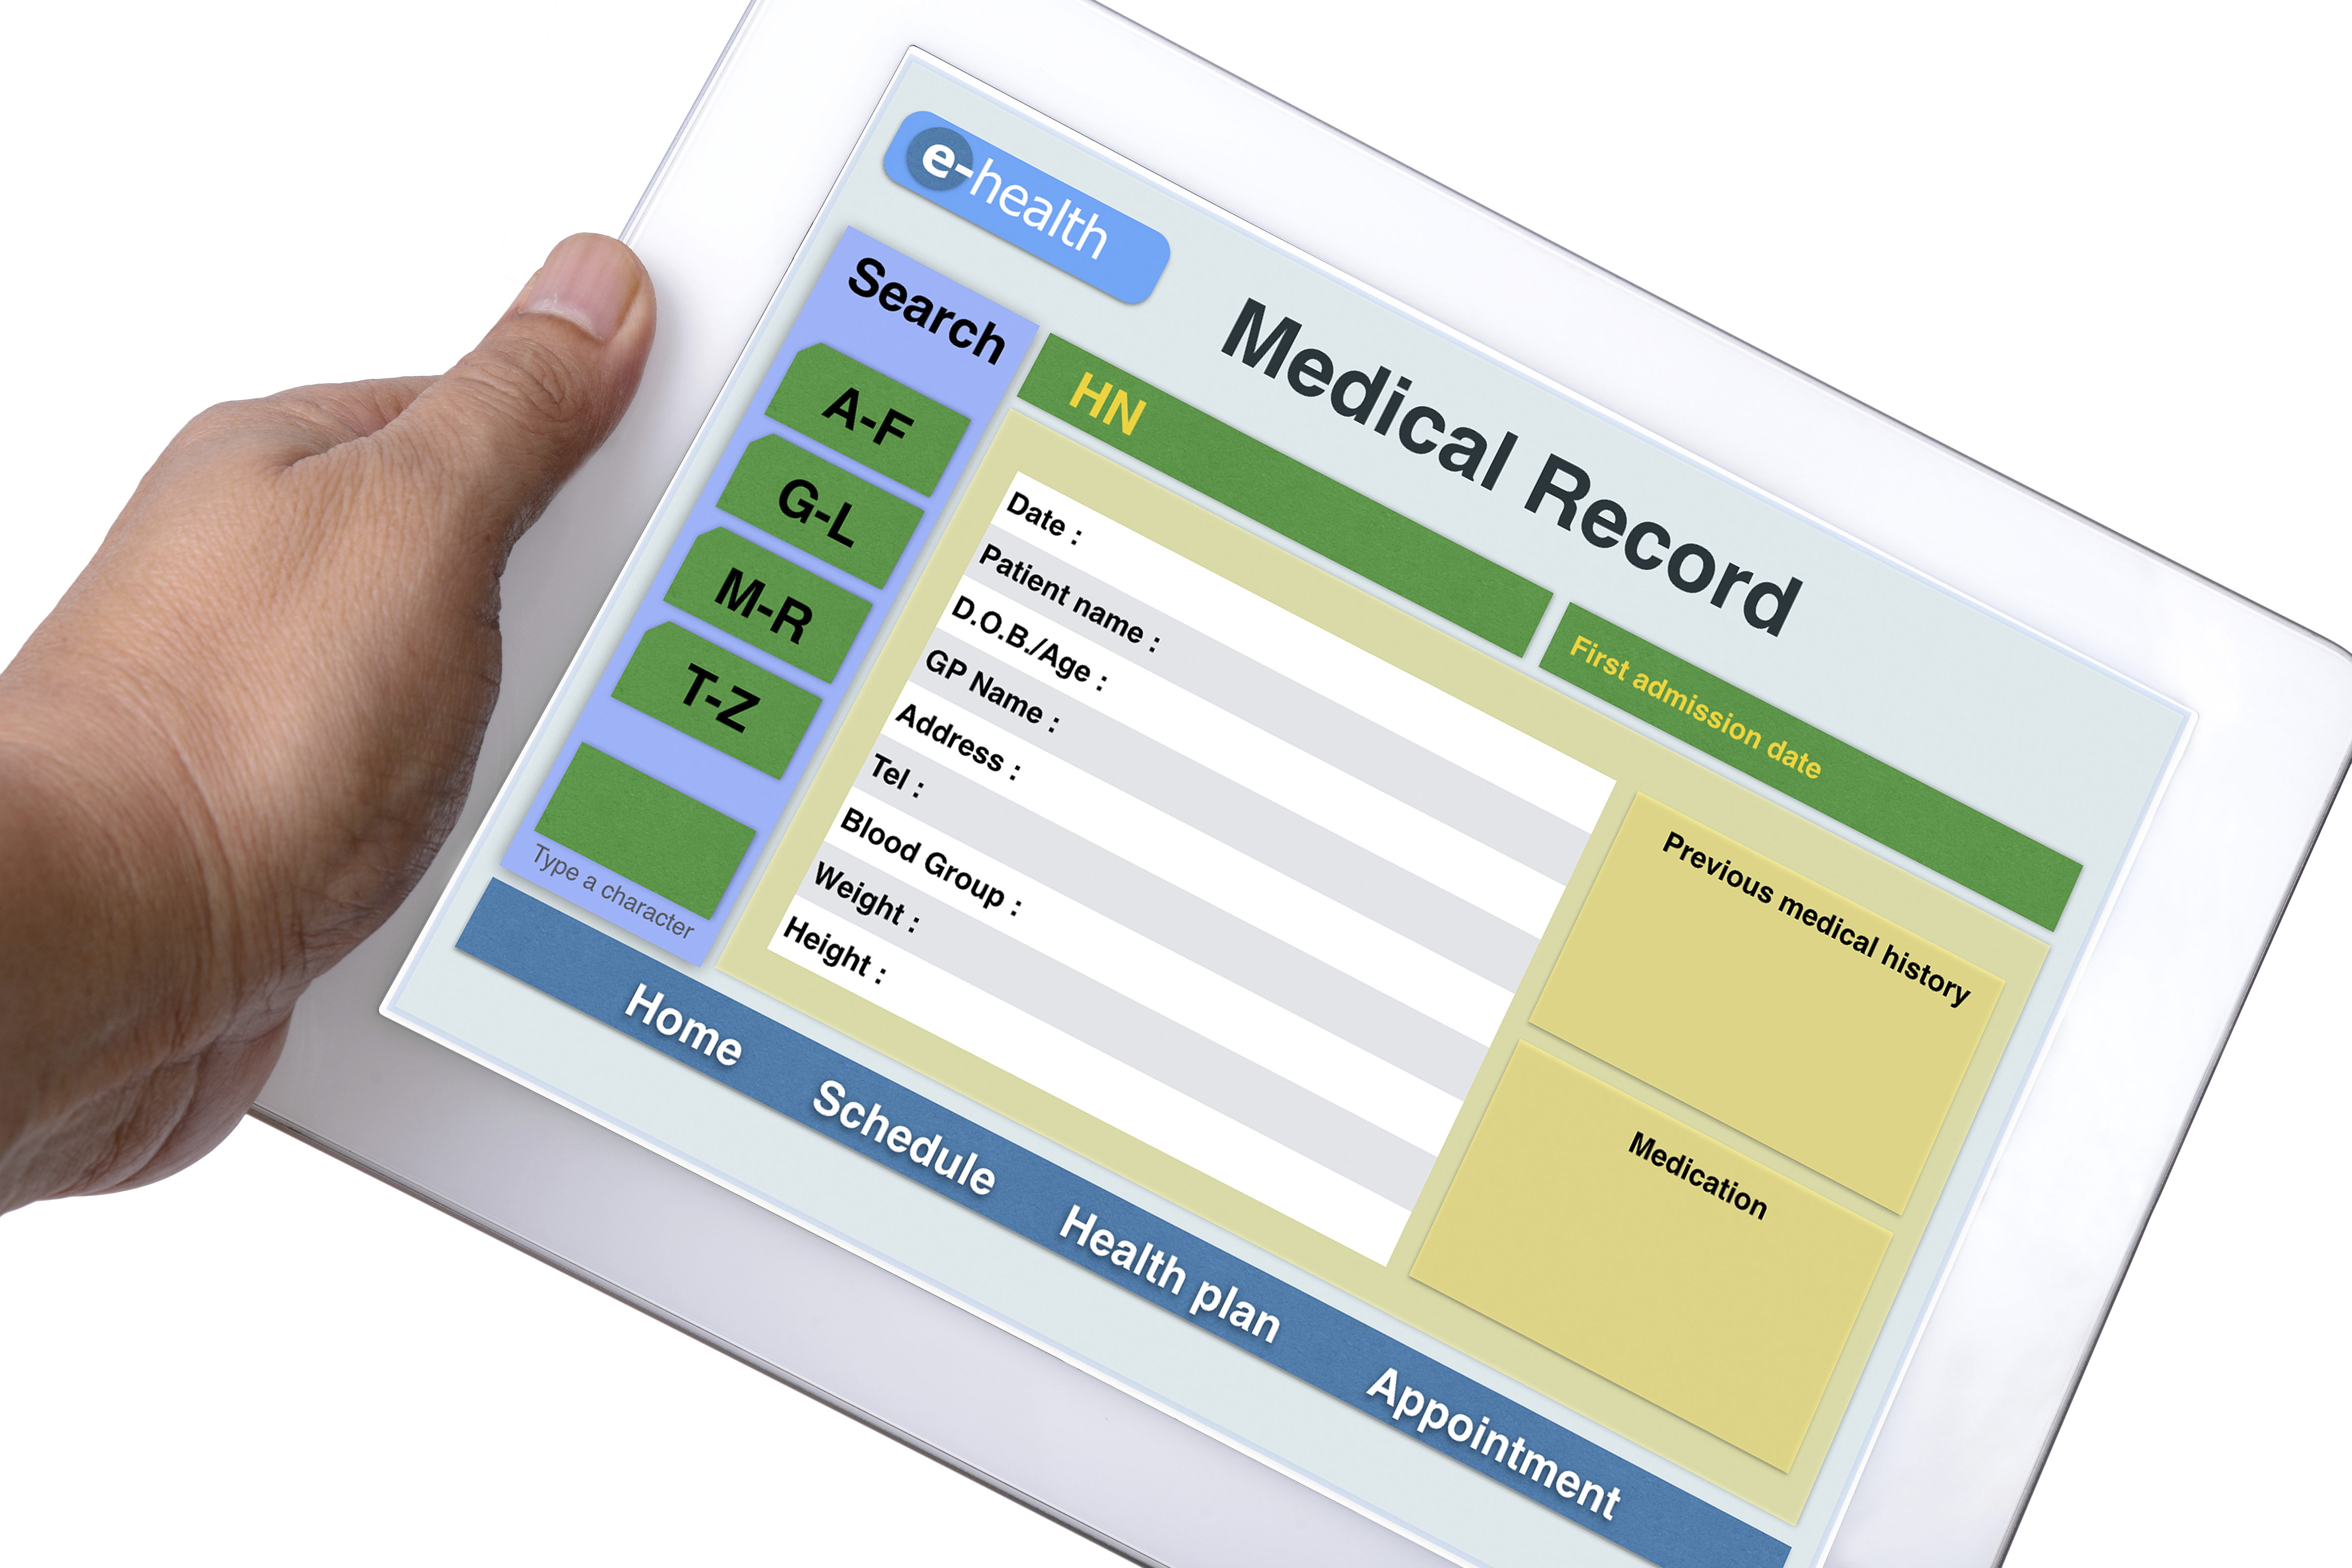 Texas is switching to electronic medical records